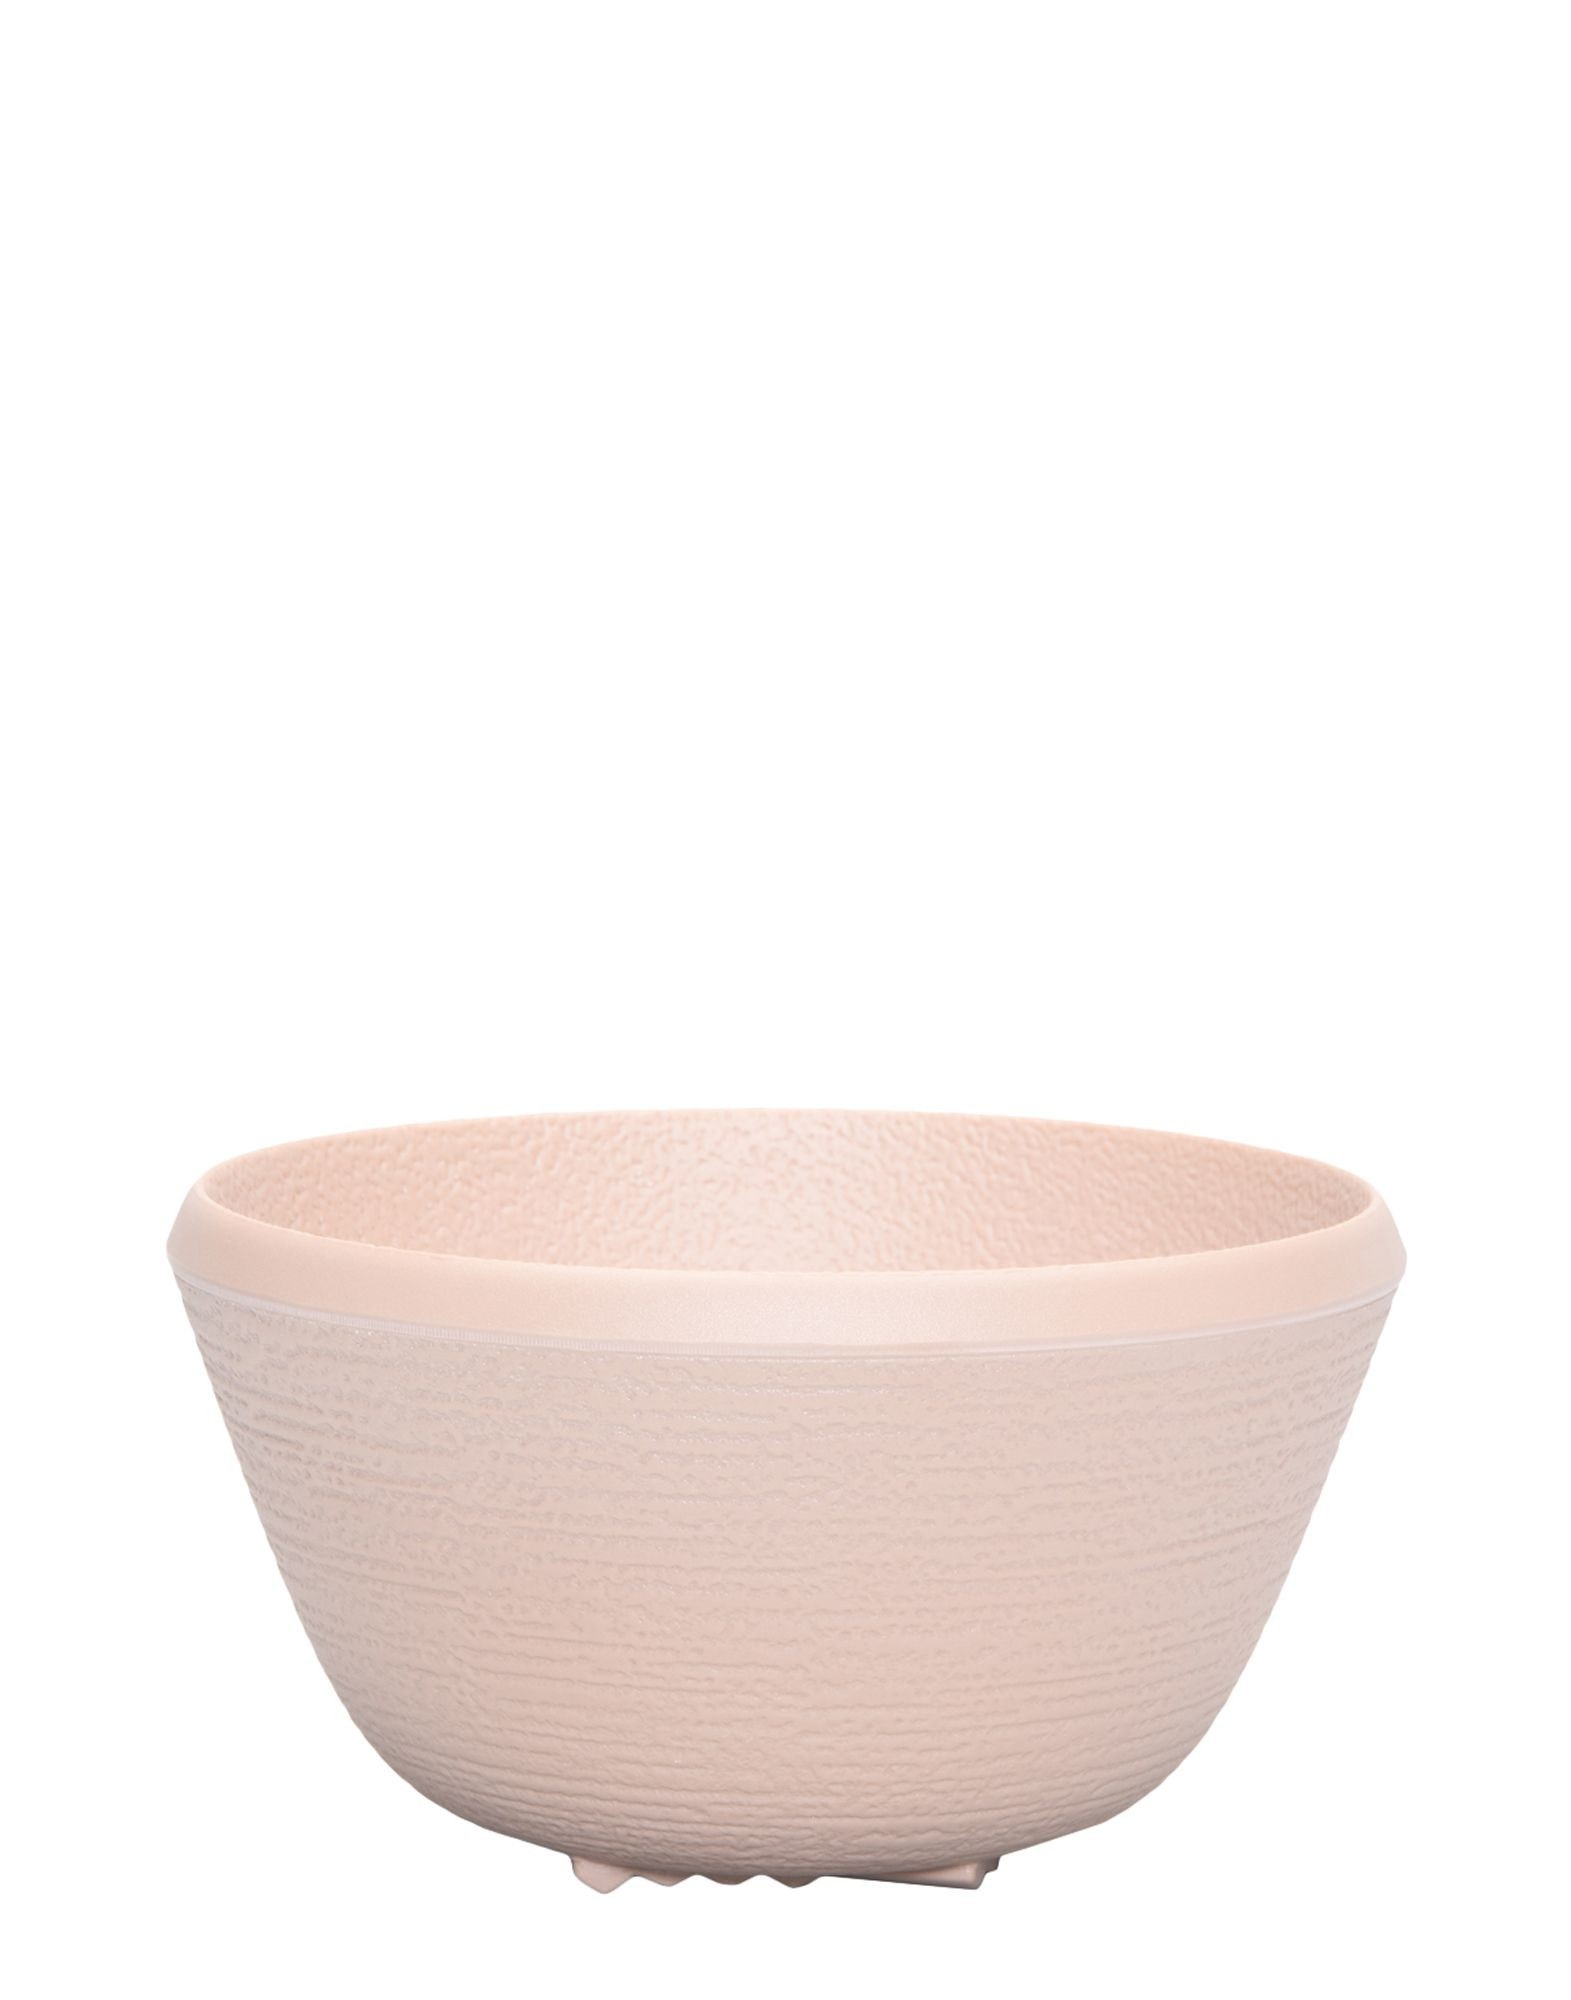 Kartell Trama Bowls  (Priced Each, Sold In Sets Of 4)